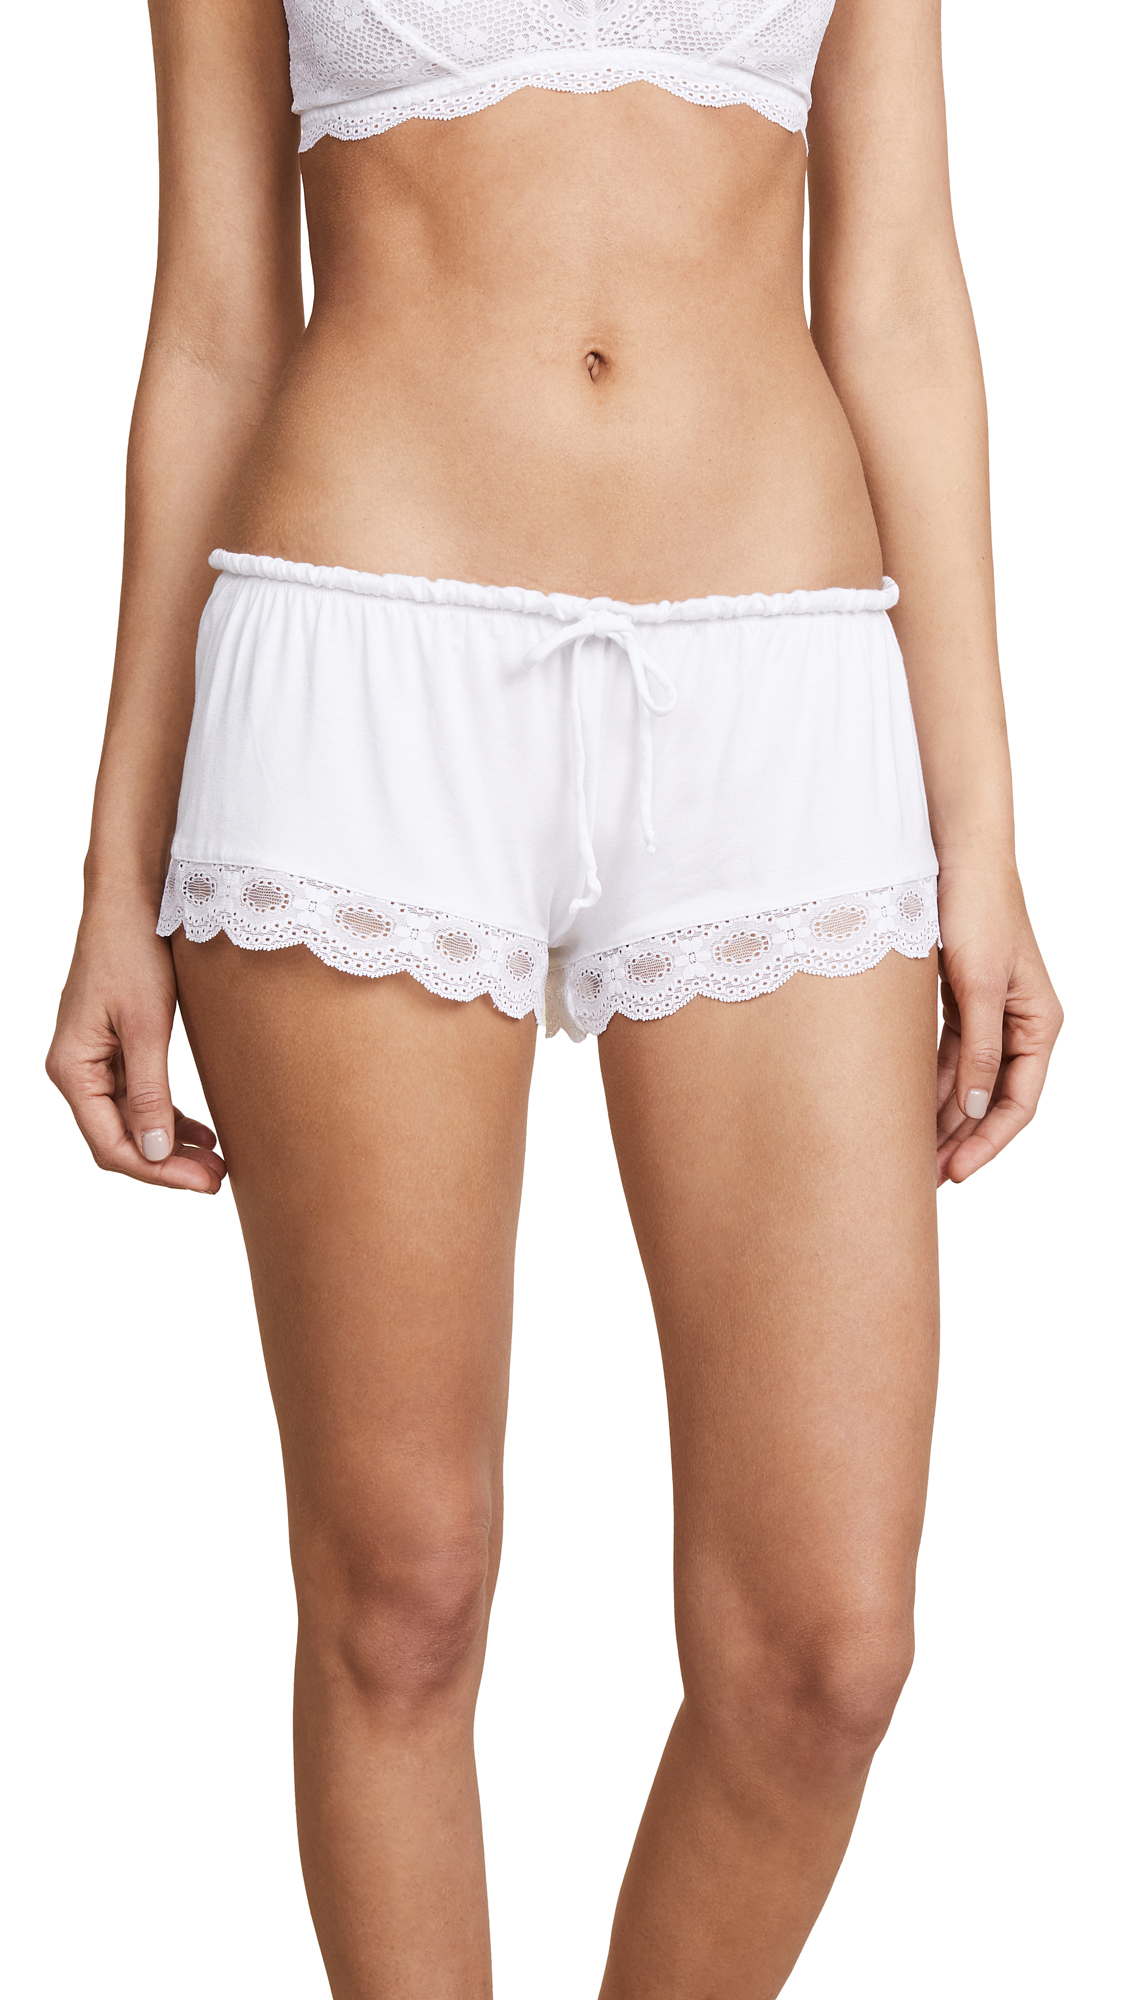 Eberjey India Lace Shortie - White